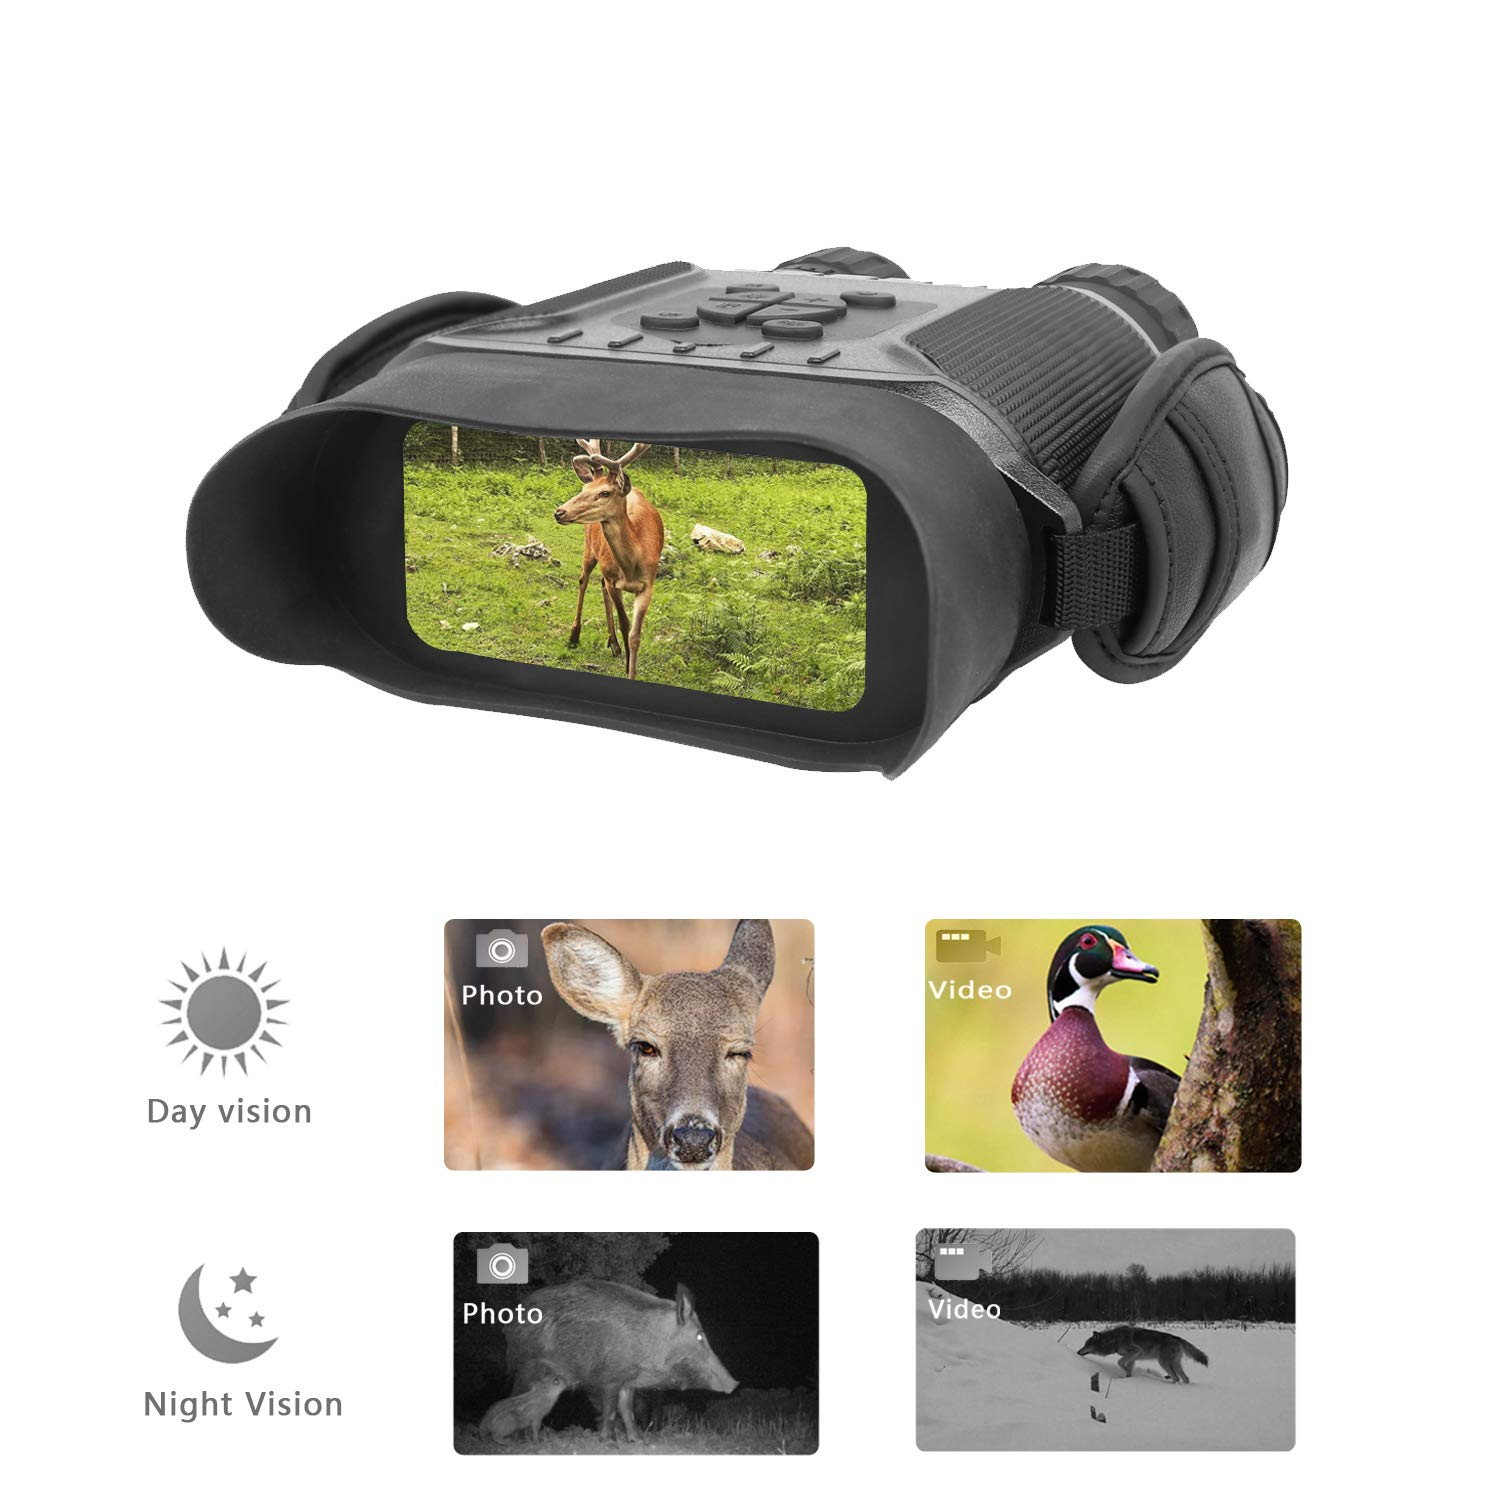 Guomu High Value Night Vision Binoculars NV900 with 4'' LCD Widescreen, 4.5-22.5 x 40 Digital Infrared Dark Night Vision Scope Camera Take 5mp Photo & 720p Video (with Sound) Up to 400m /1300ft by Guomu